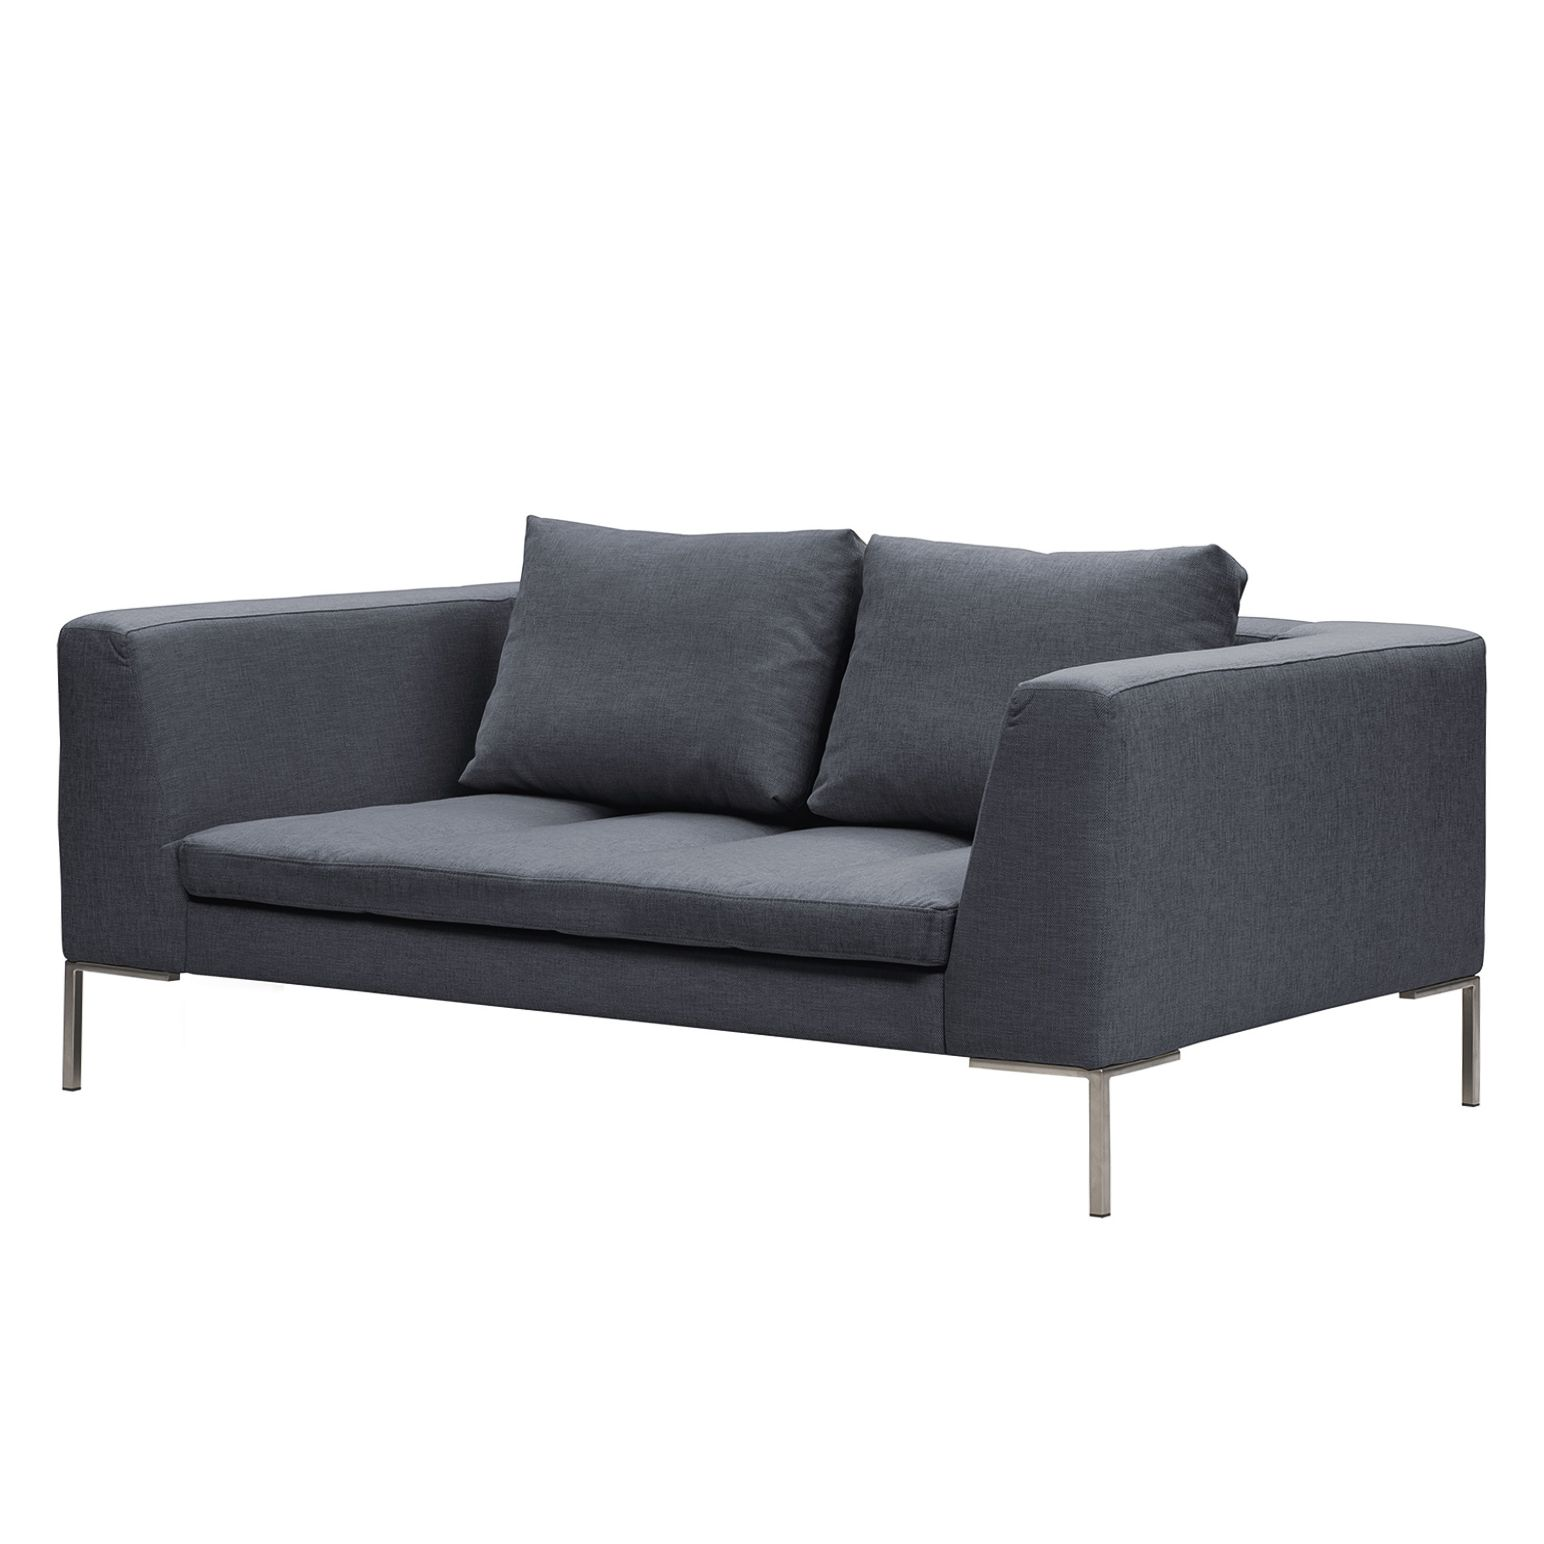 Sofa Madison (2-Sitzer) Webstoff - Stoff Milan Anthrazit